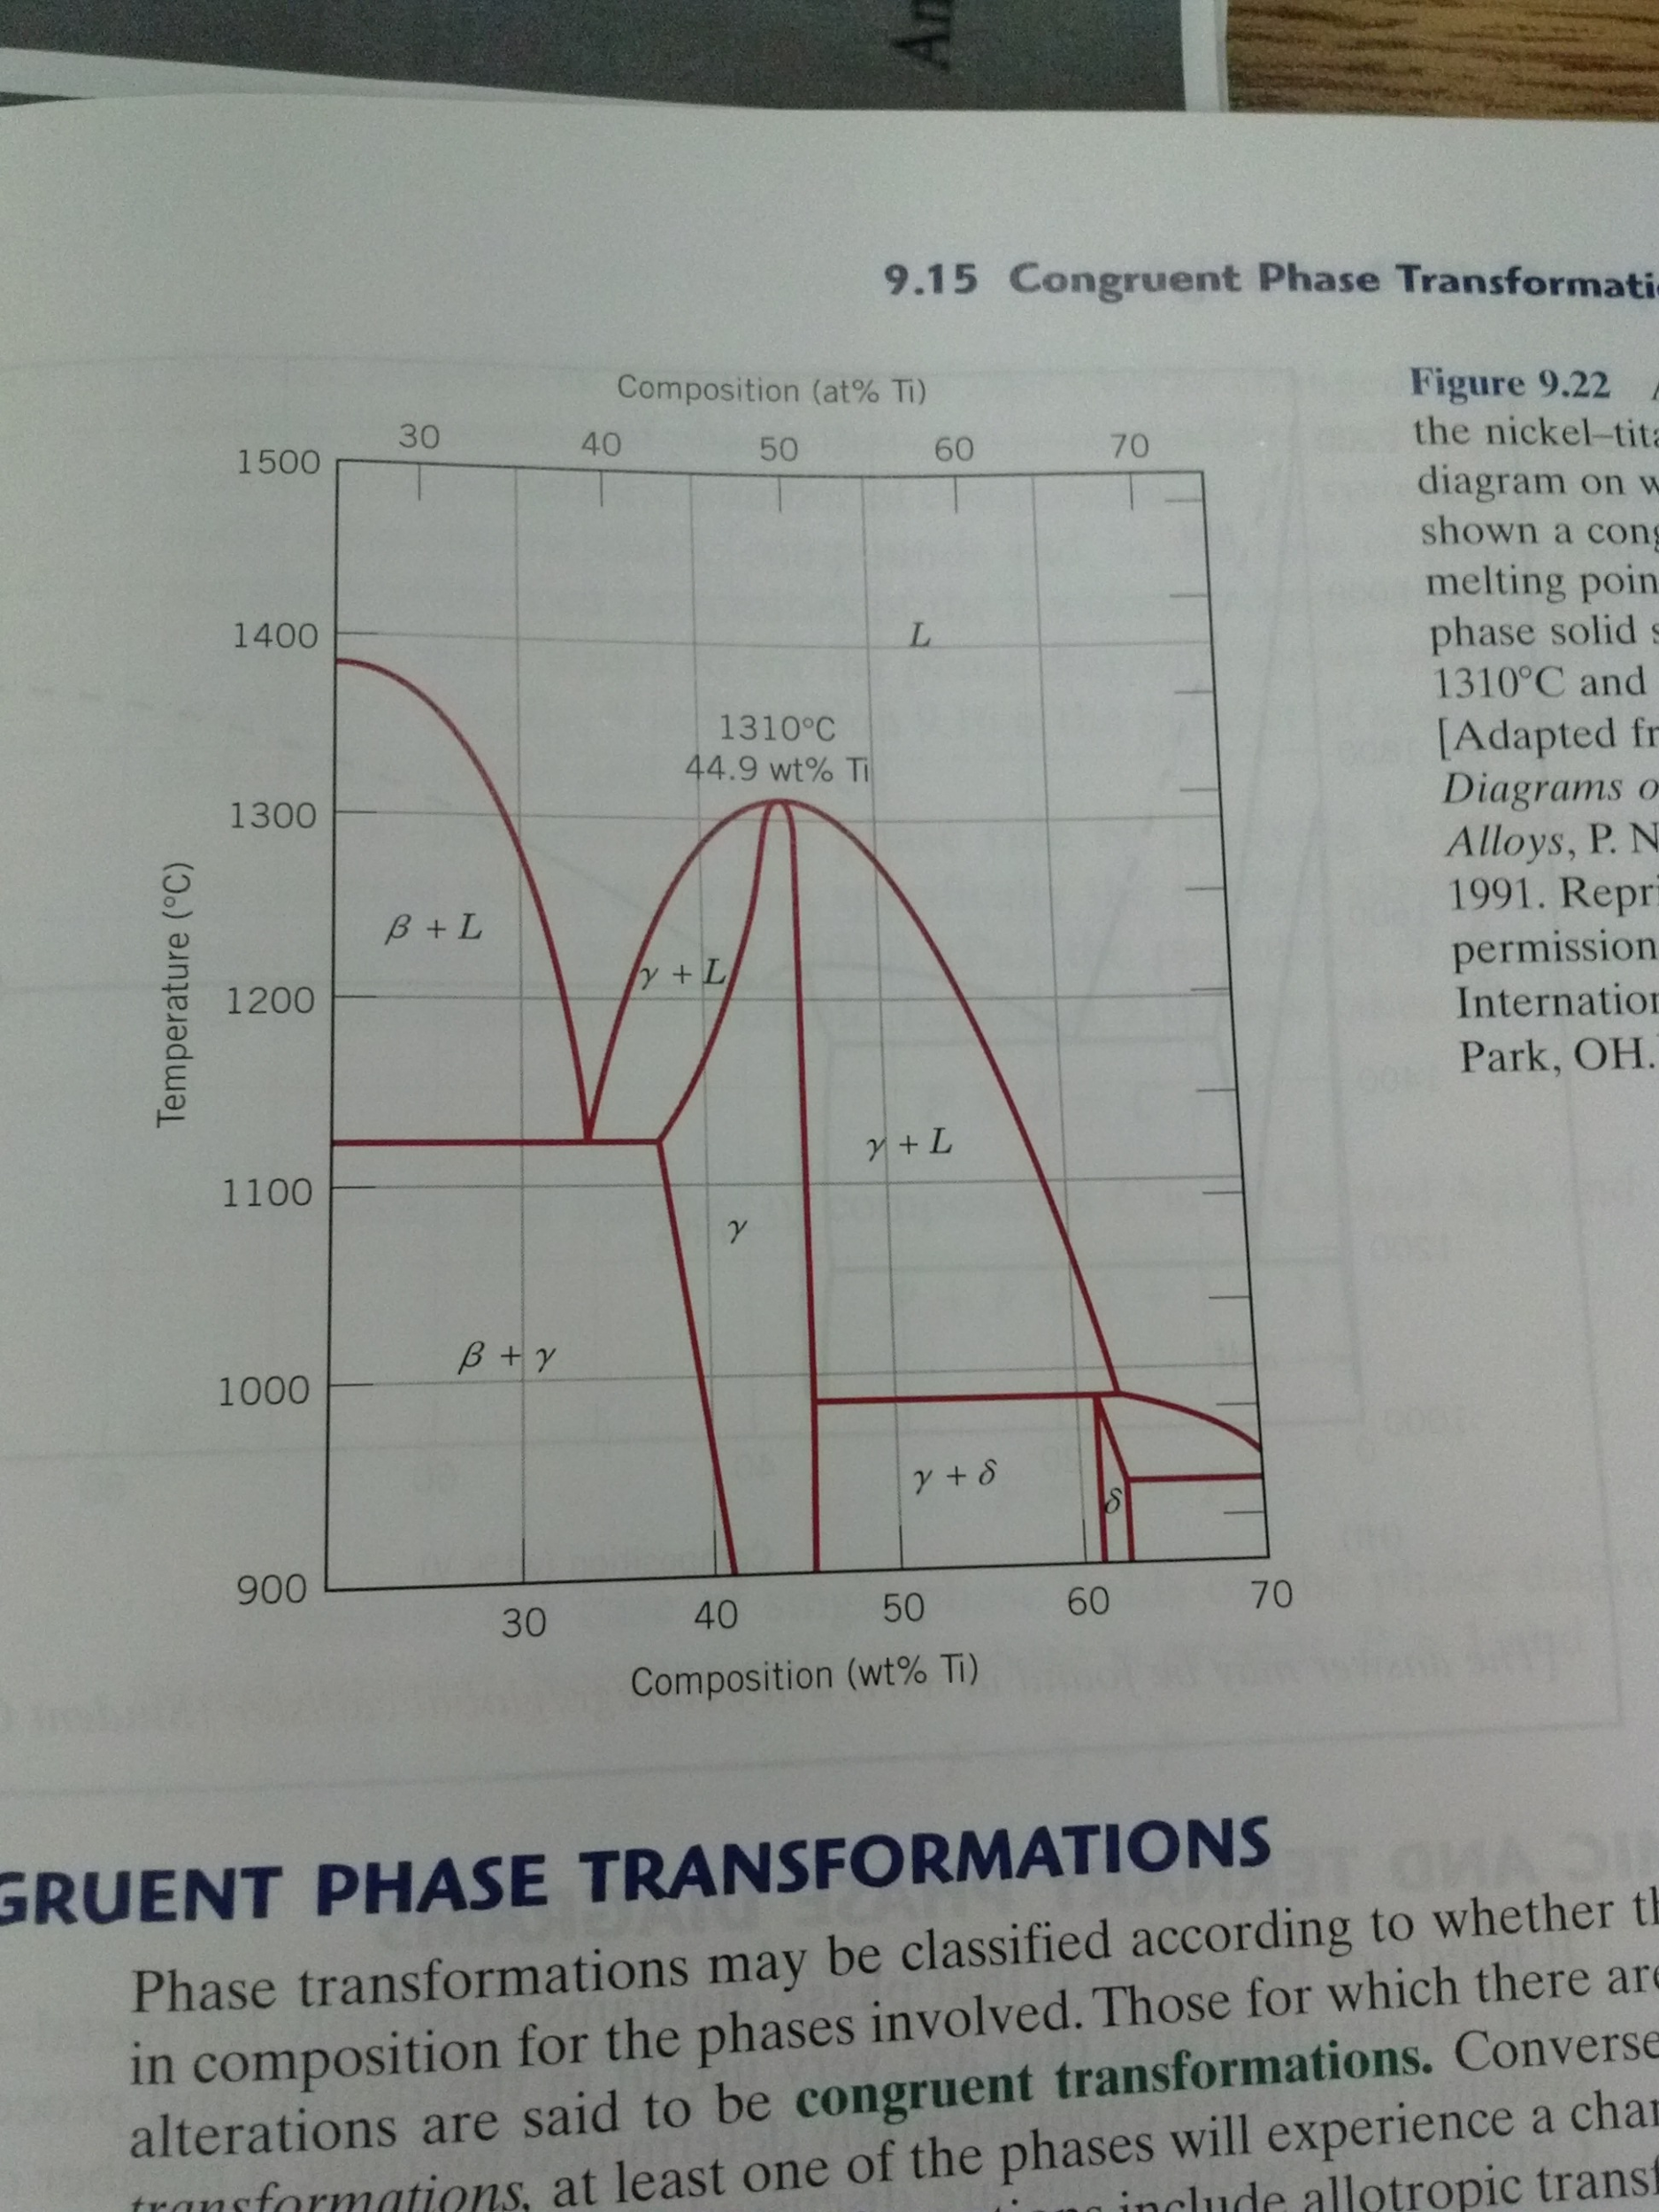 Phase tranformations may be classified according t